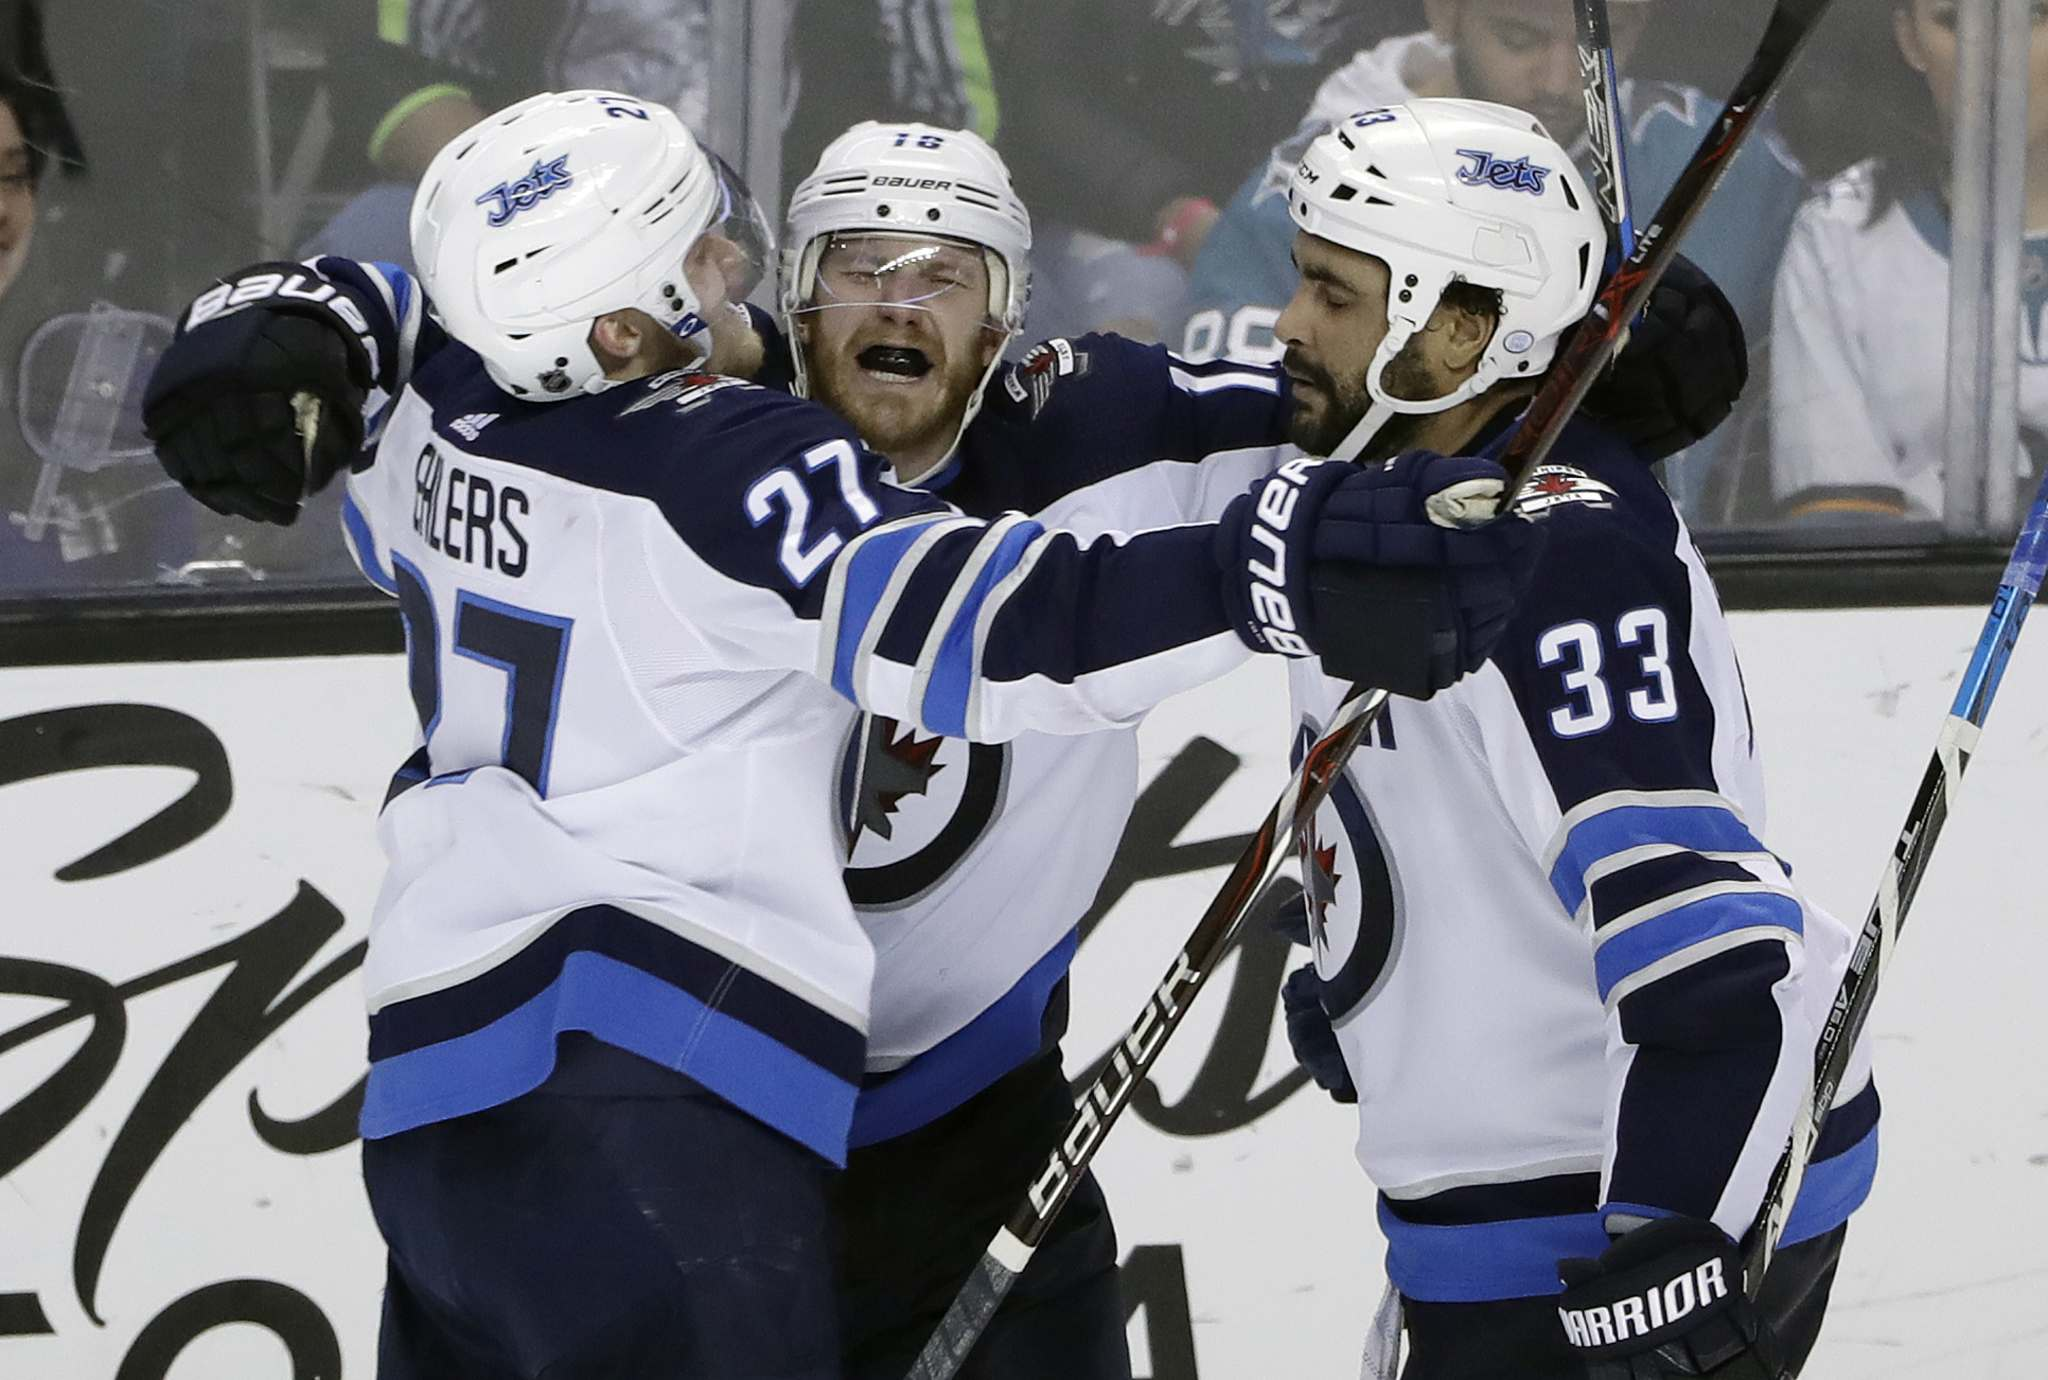 Winnipeg Jets' Bryan Little (centre) celebrates his overtime goal with teammates Nikolaj Ehlers (27) and Dustin Byfuglien (33) in an NHL hockey game against the San Jose Sharks last season in San Jose, Calif. Winnipeg won 5-4. (Marcio Jose Sanchez / The Associated Press)